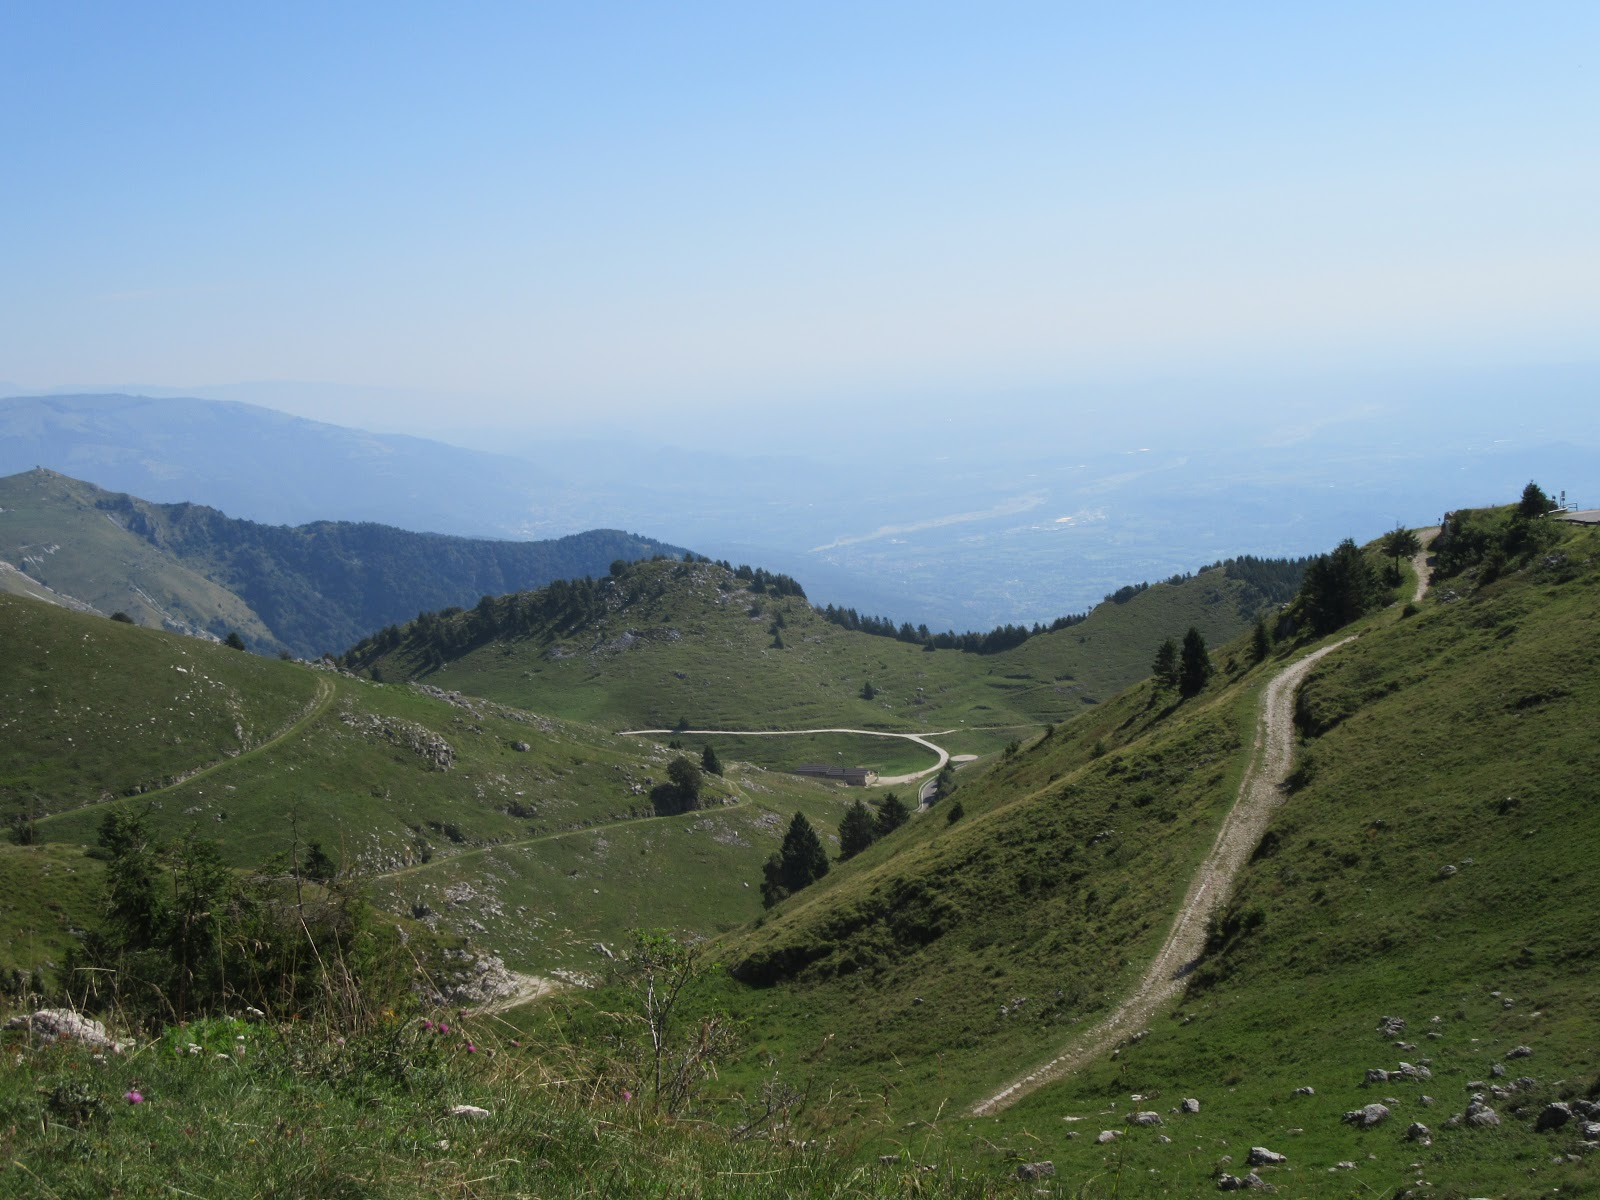 Bike climb of Monte Grappa from Crespano - gravel roadway and city below